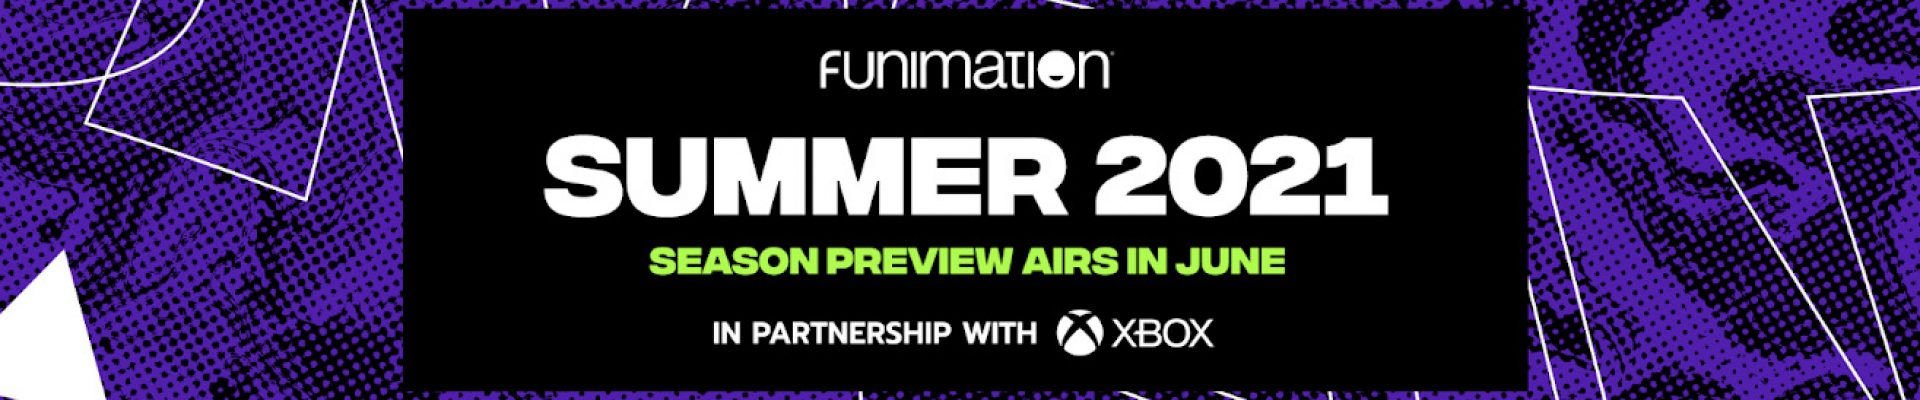 Funimation Schedules Summer Preview Fan Event For June 18